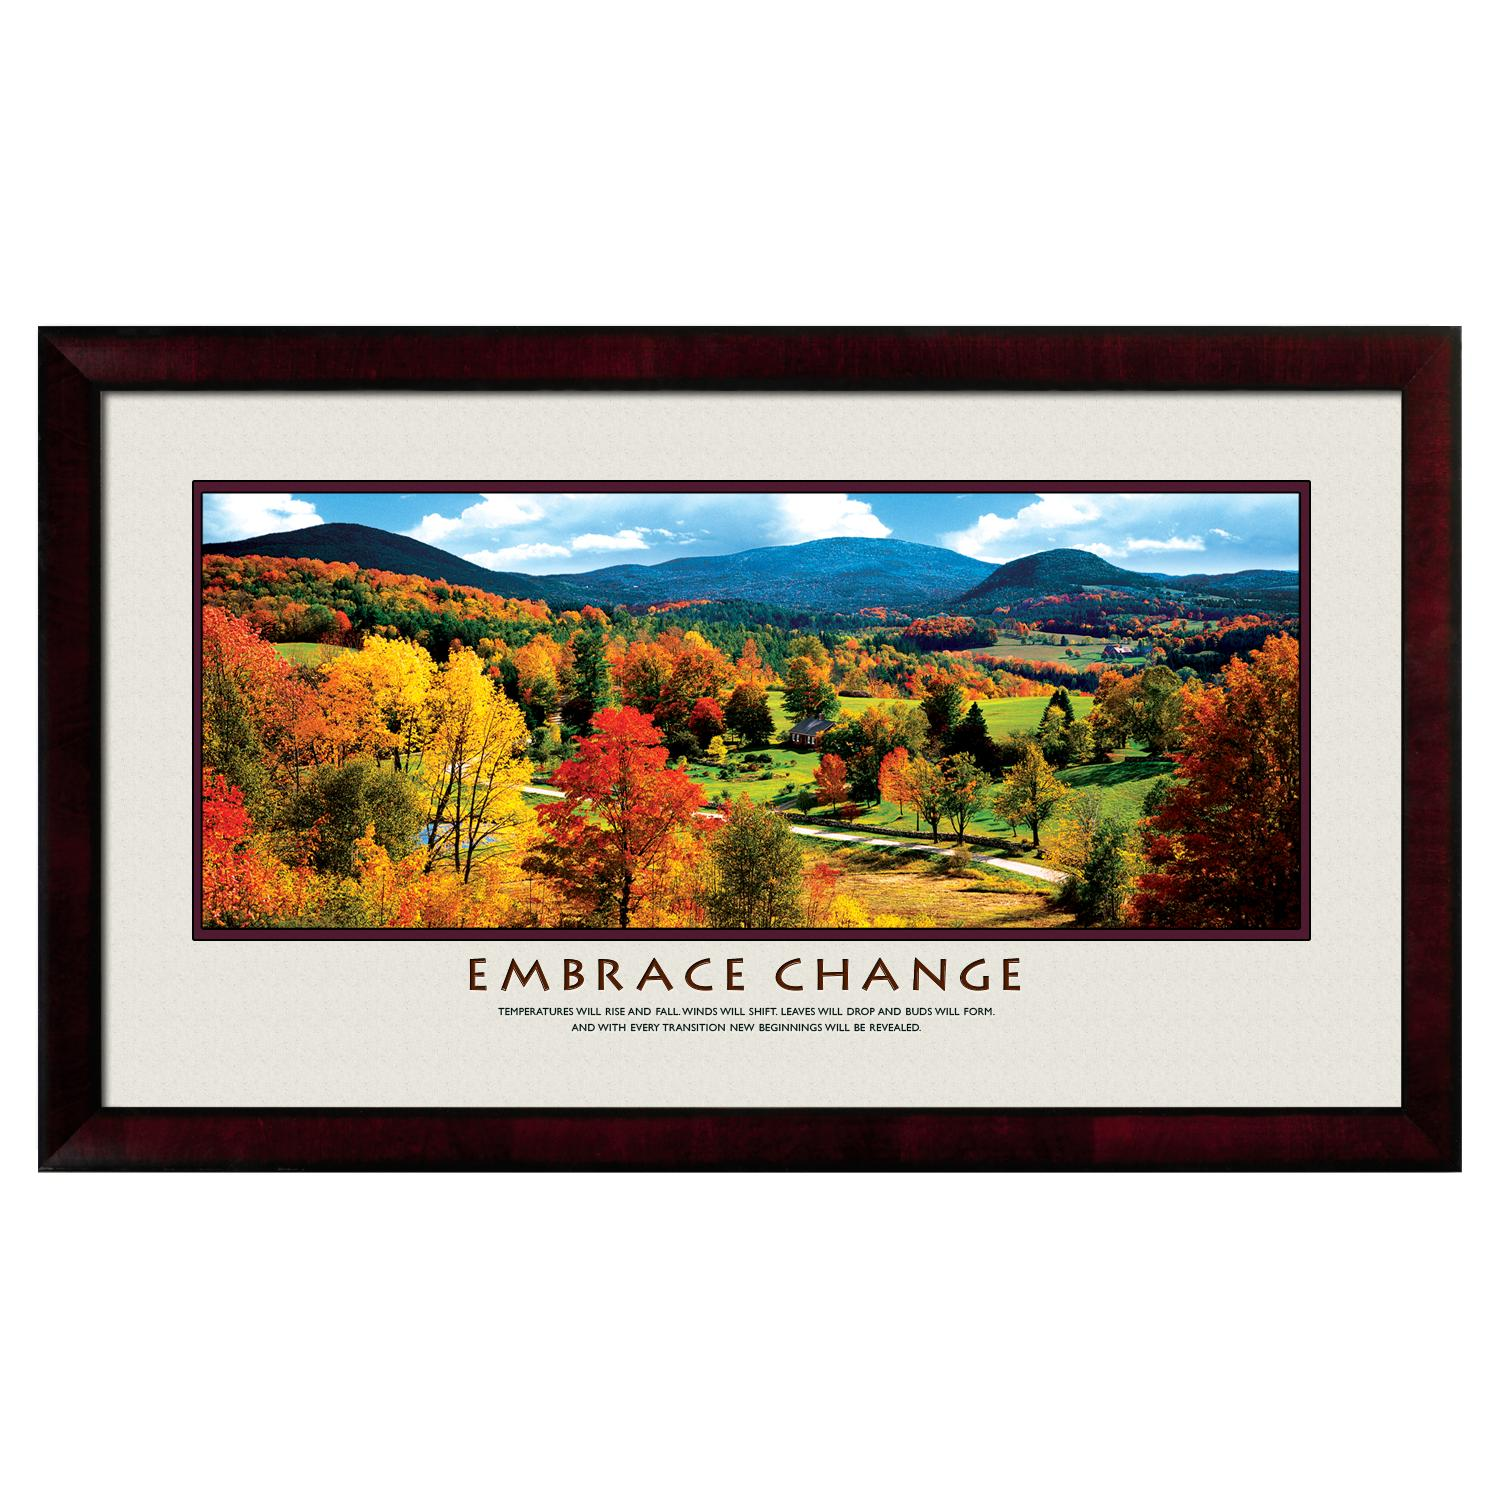 Embrace Change Motivational Poster